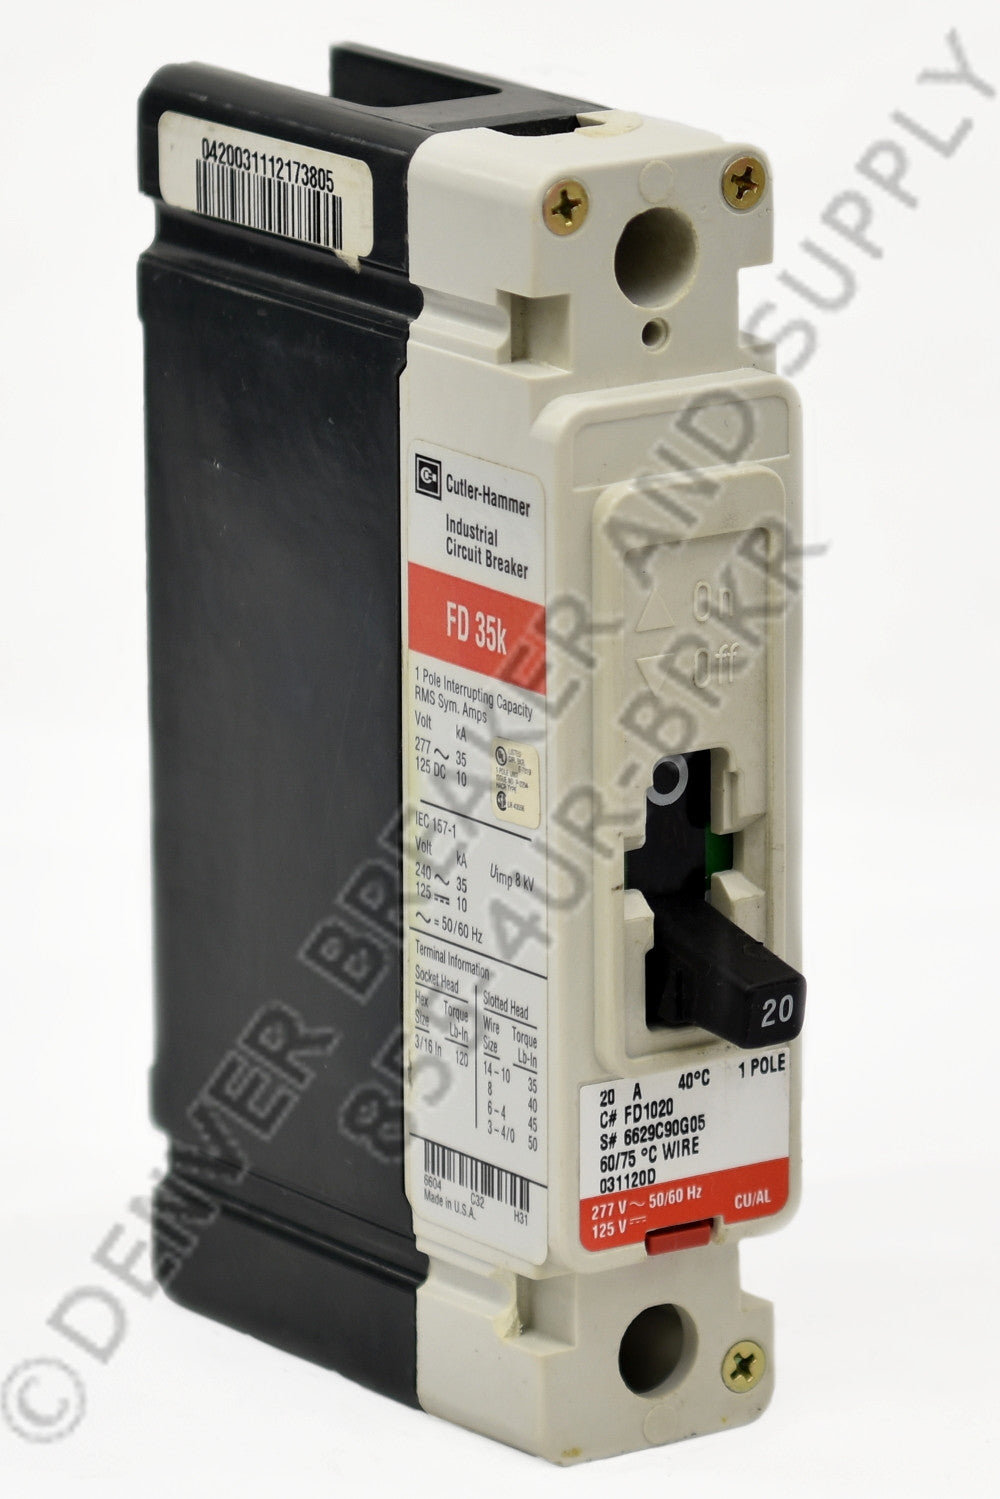 Cutler Hammer FD1100 Circuit Breakers